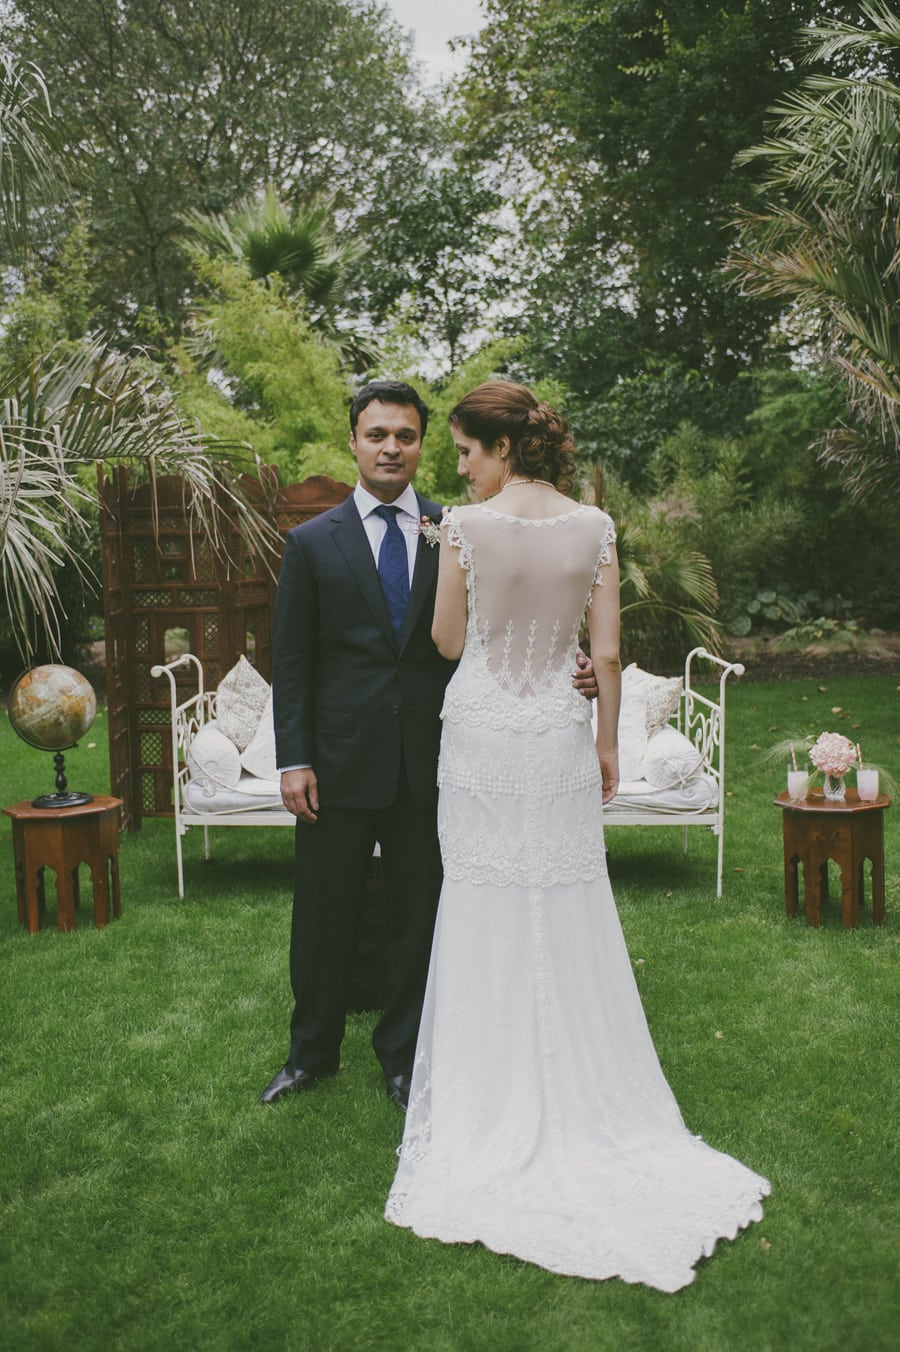 Portrait of a London wedding couple at a garden venue, produced by luxury UK wedding planners Knot & Pop